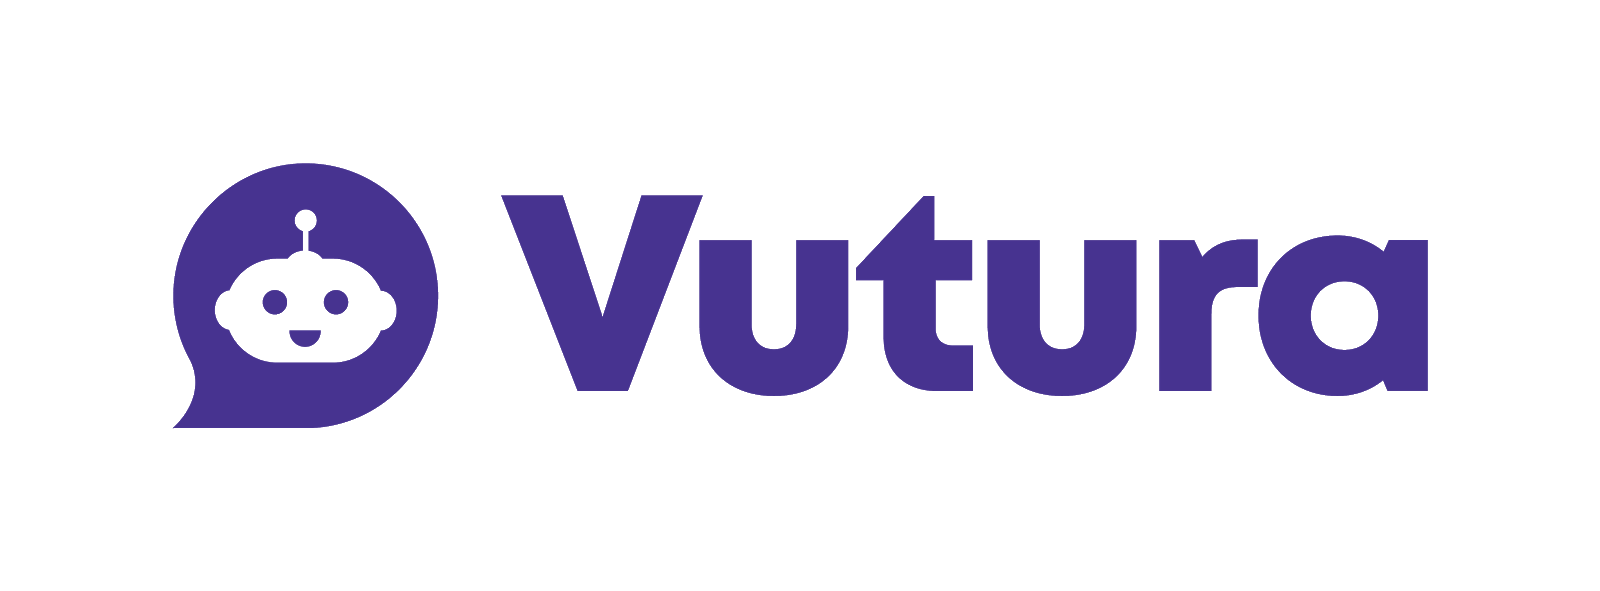 How to Respond Customer Complaint Effectively | Vutura